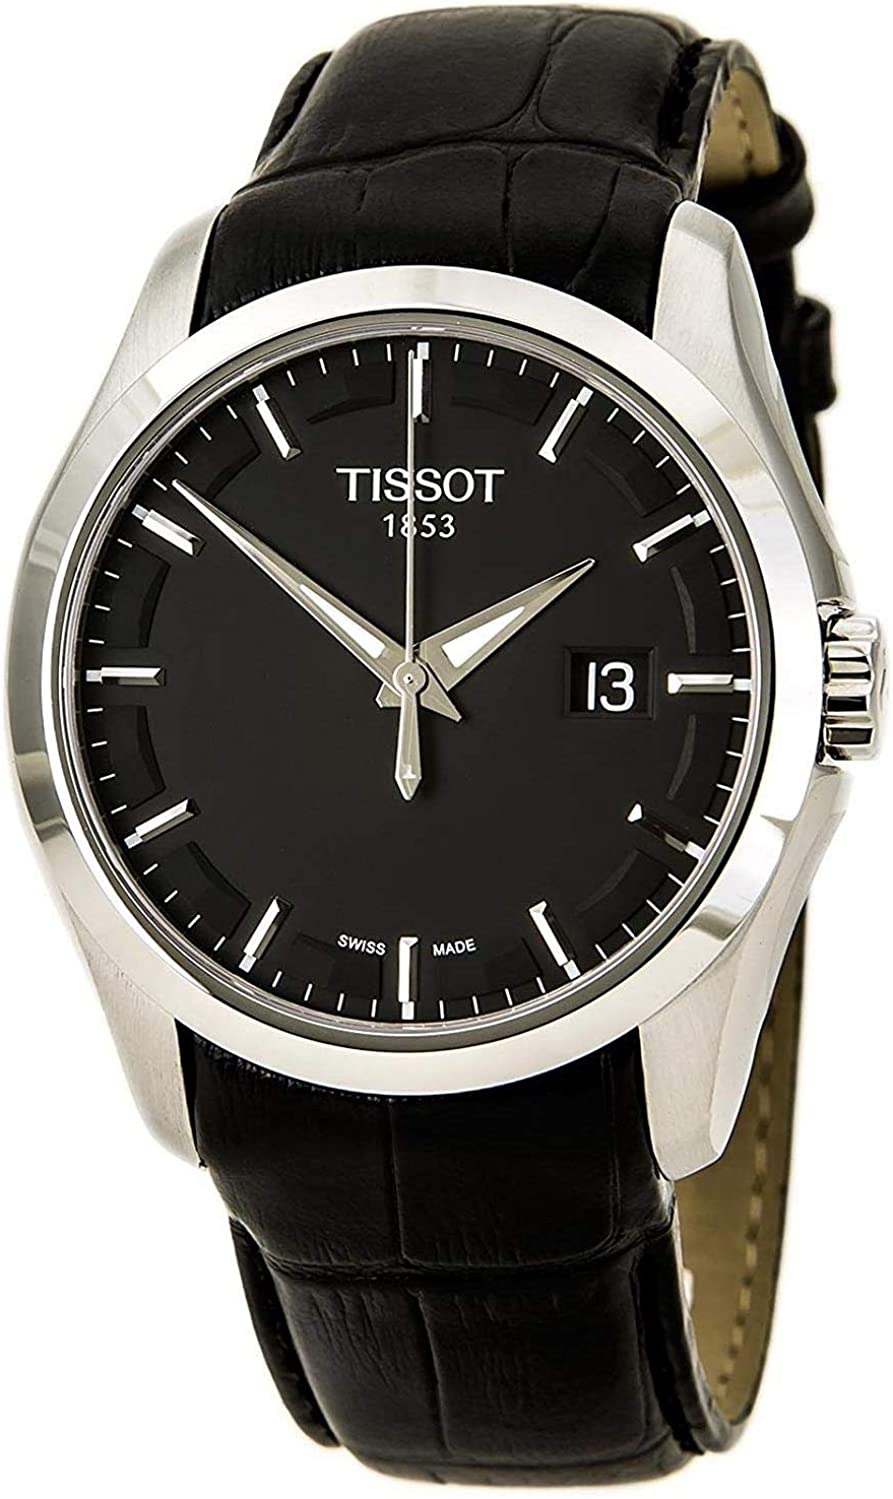 Tissot Couturier Leather Date Strap Black Dial Men s Watch T035.410.16.051.00